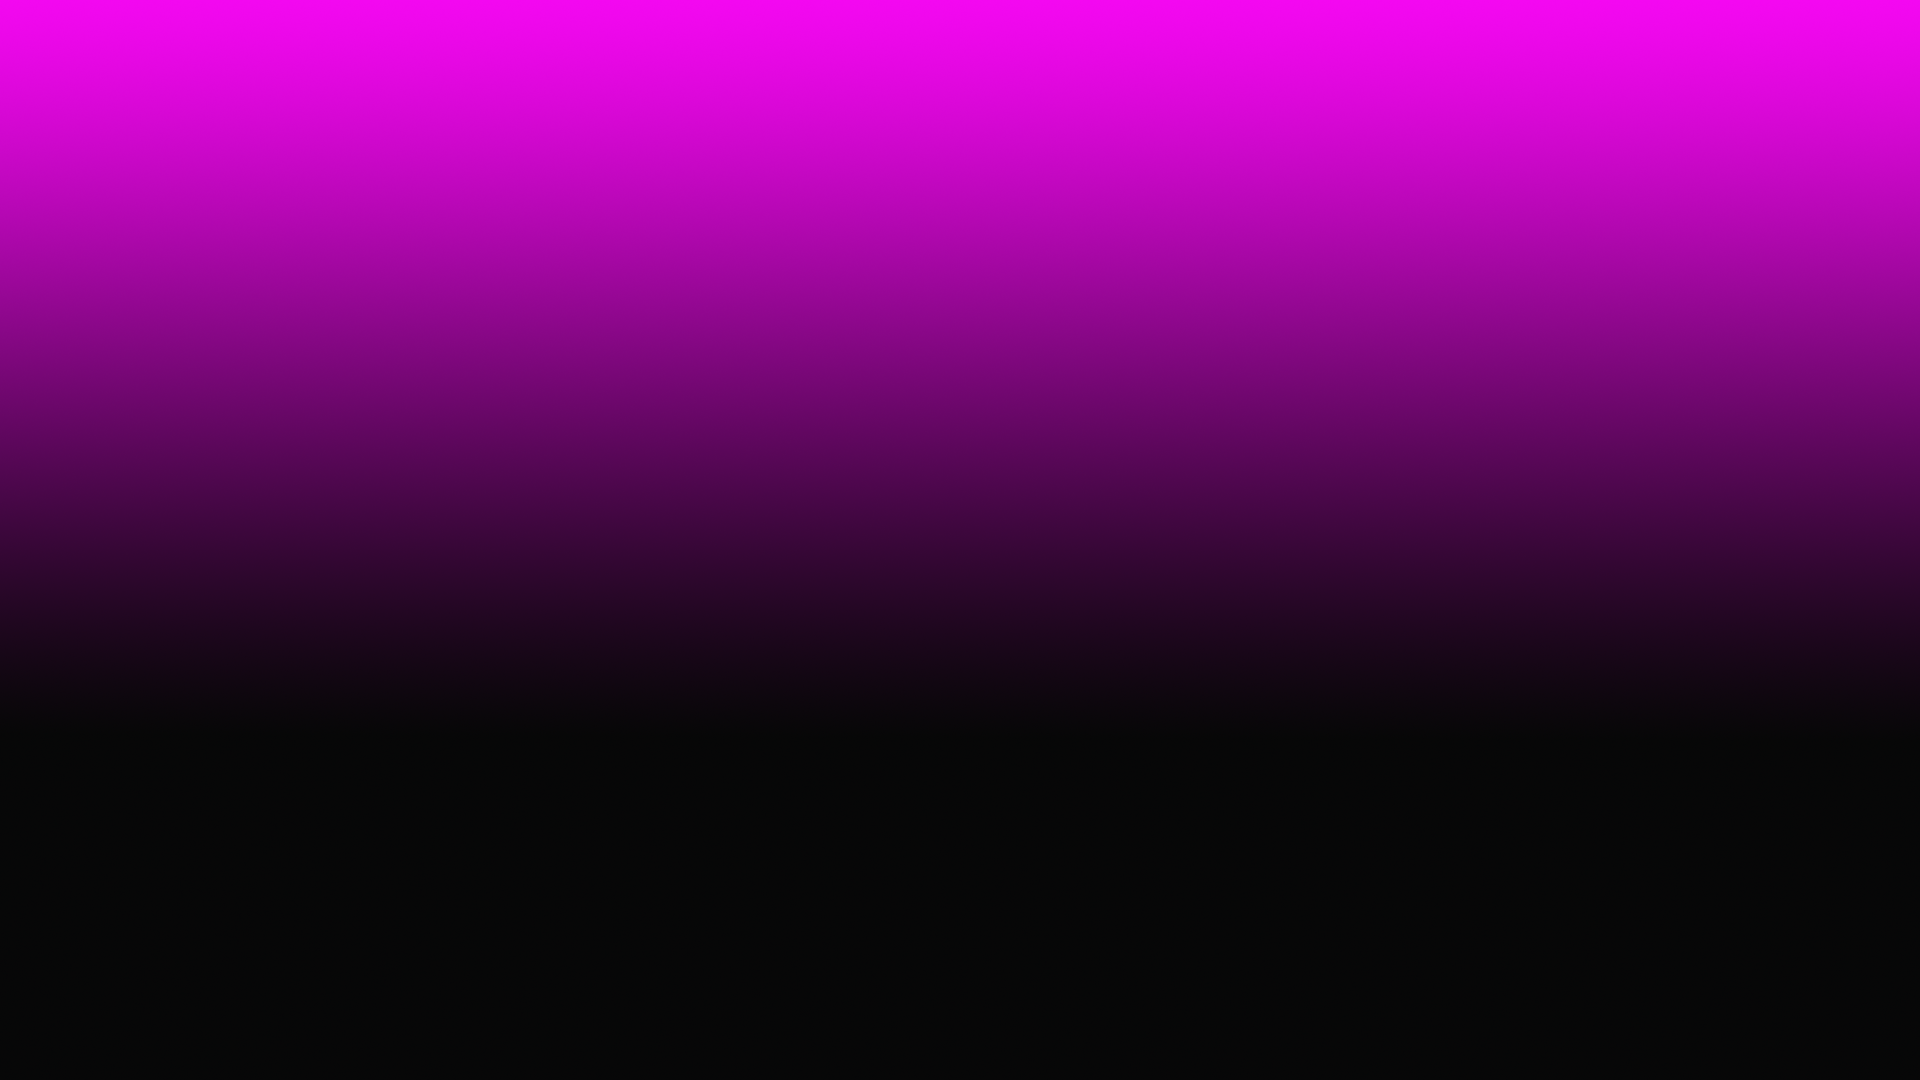 Pink And Black Wallpaper 255420